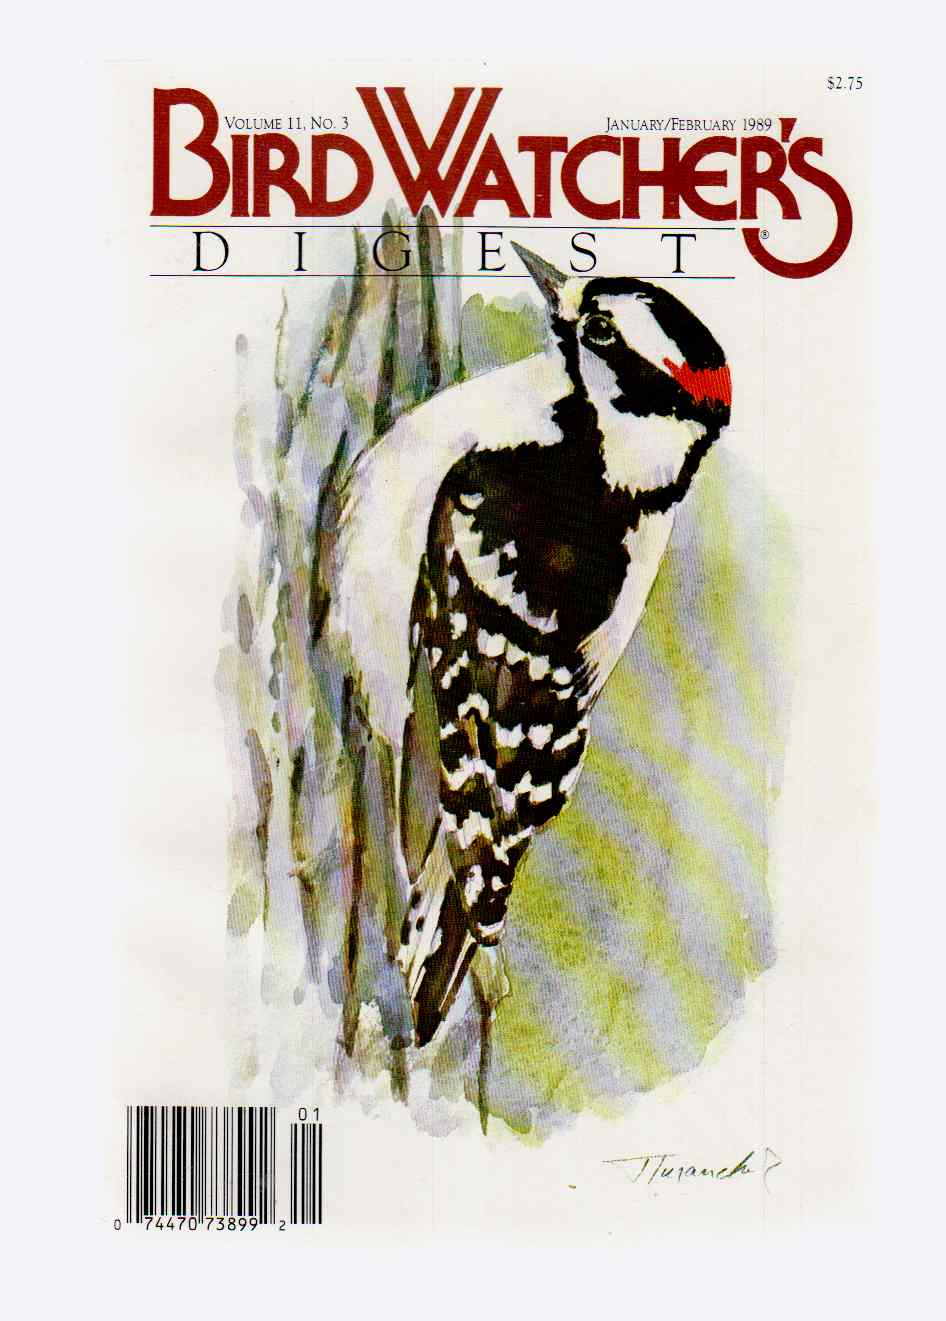 Image for Bird Watcher's Digest January/february 1989 Volume 11, No. 3